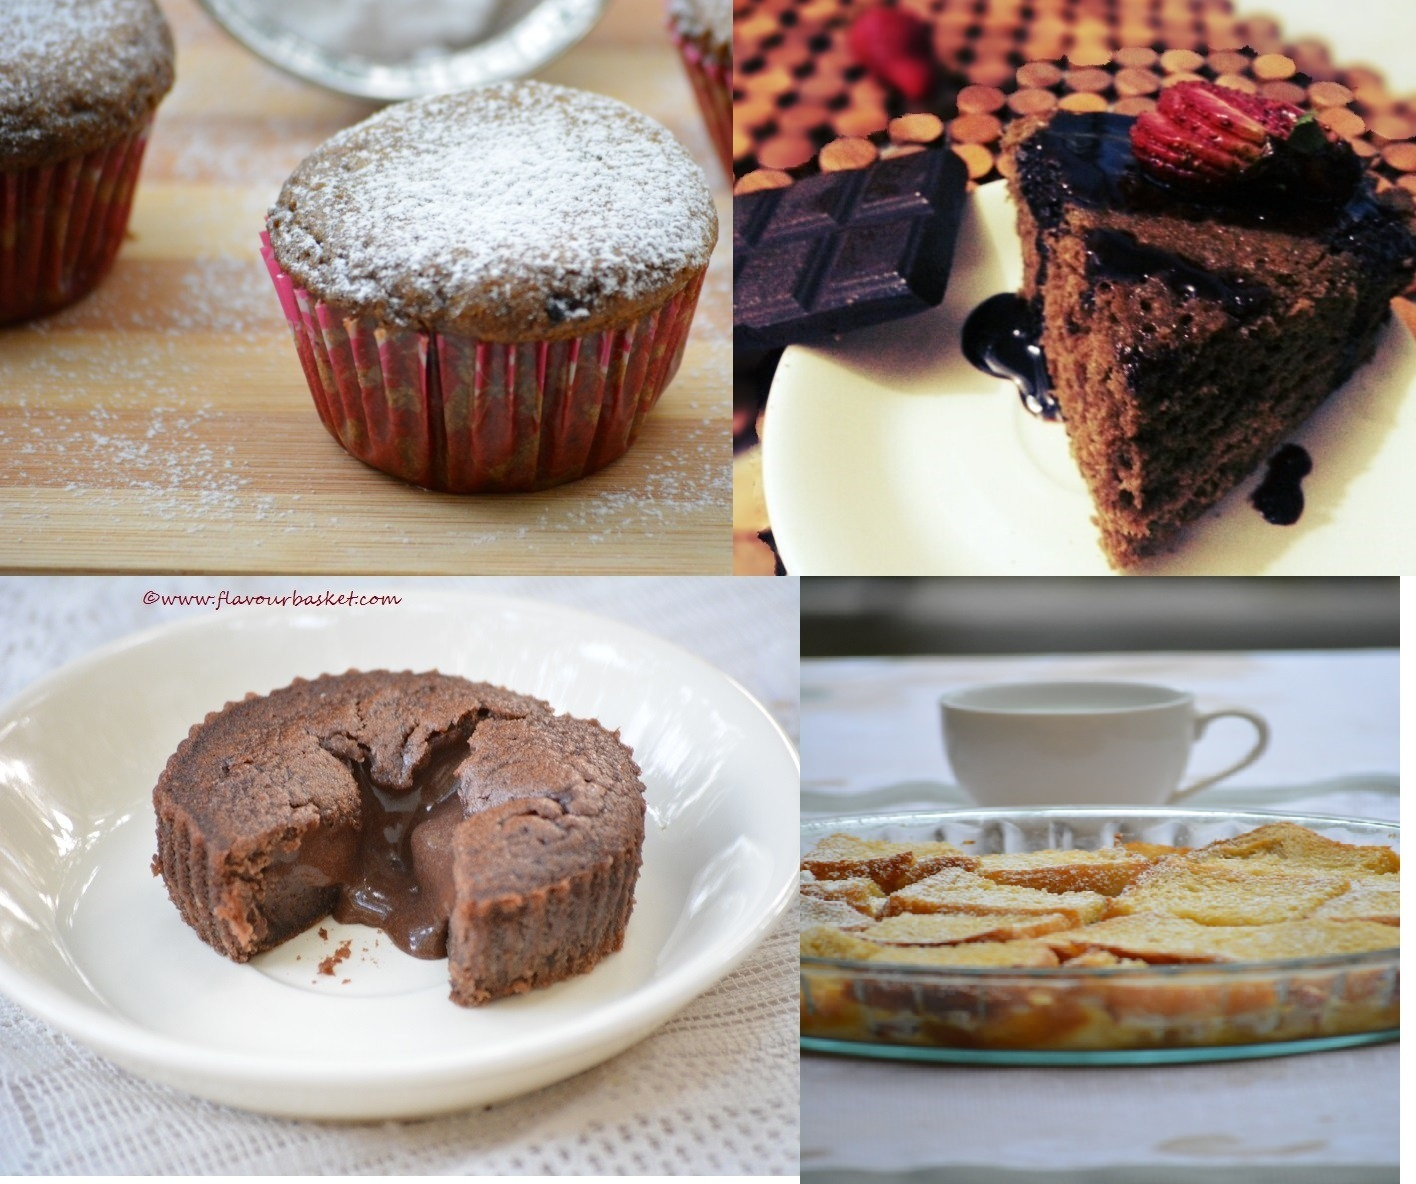 11 Phenomenal Vegetarian Desserts & Cakes For the Holidays and New Year !